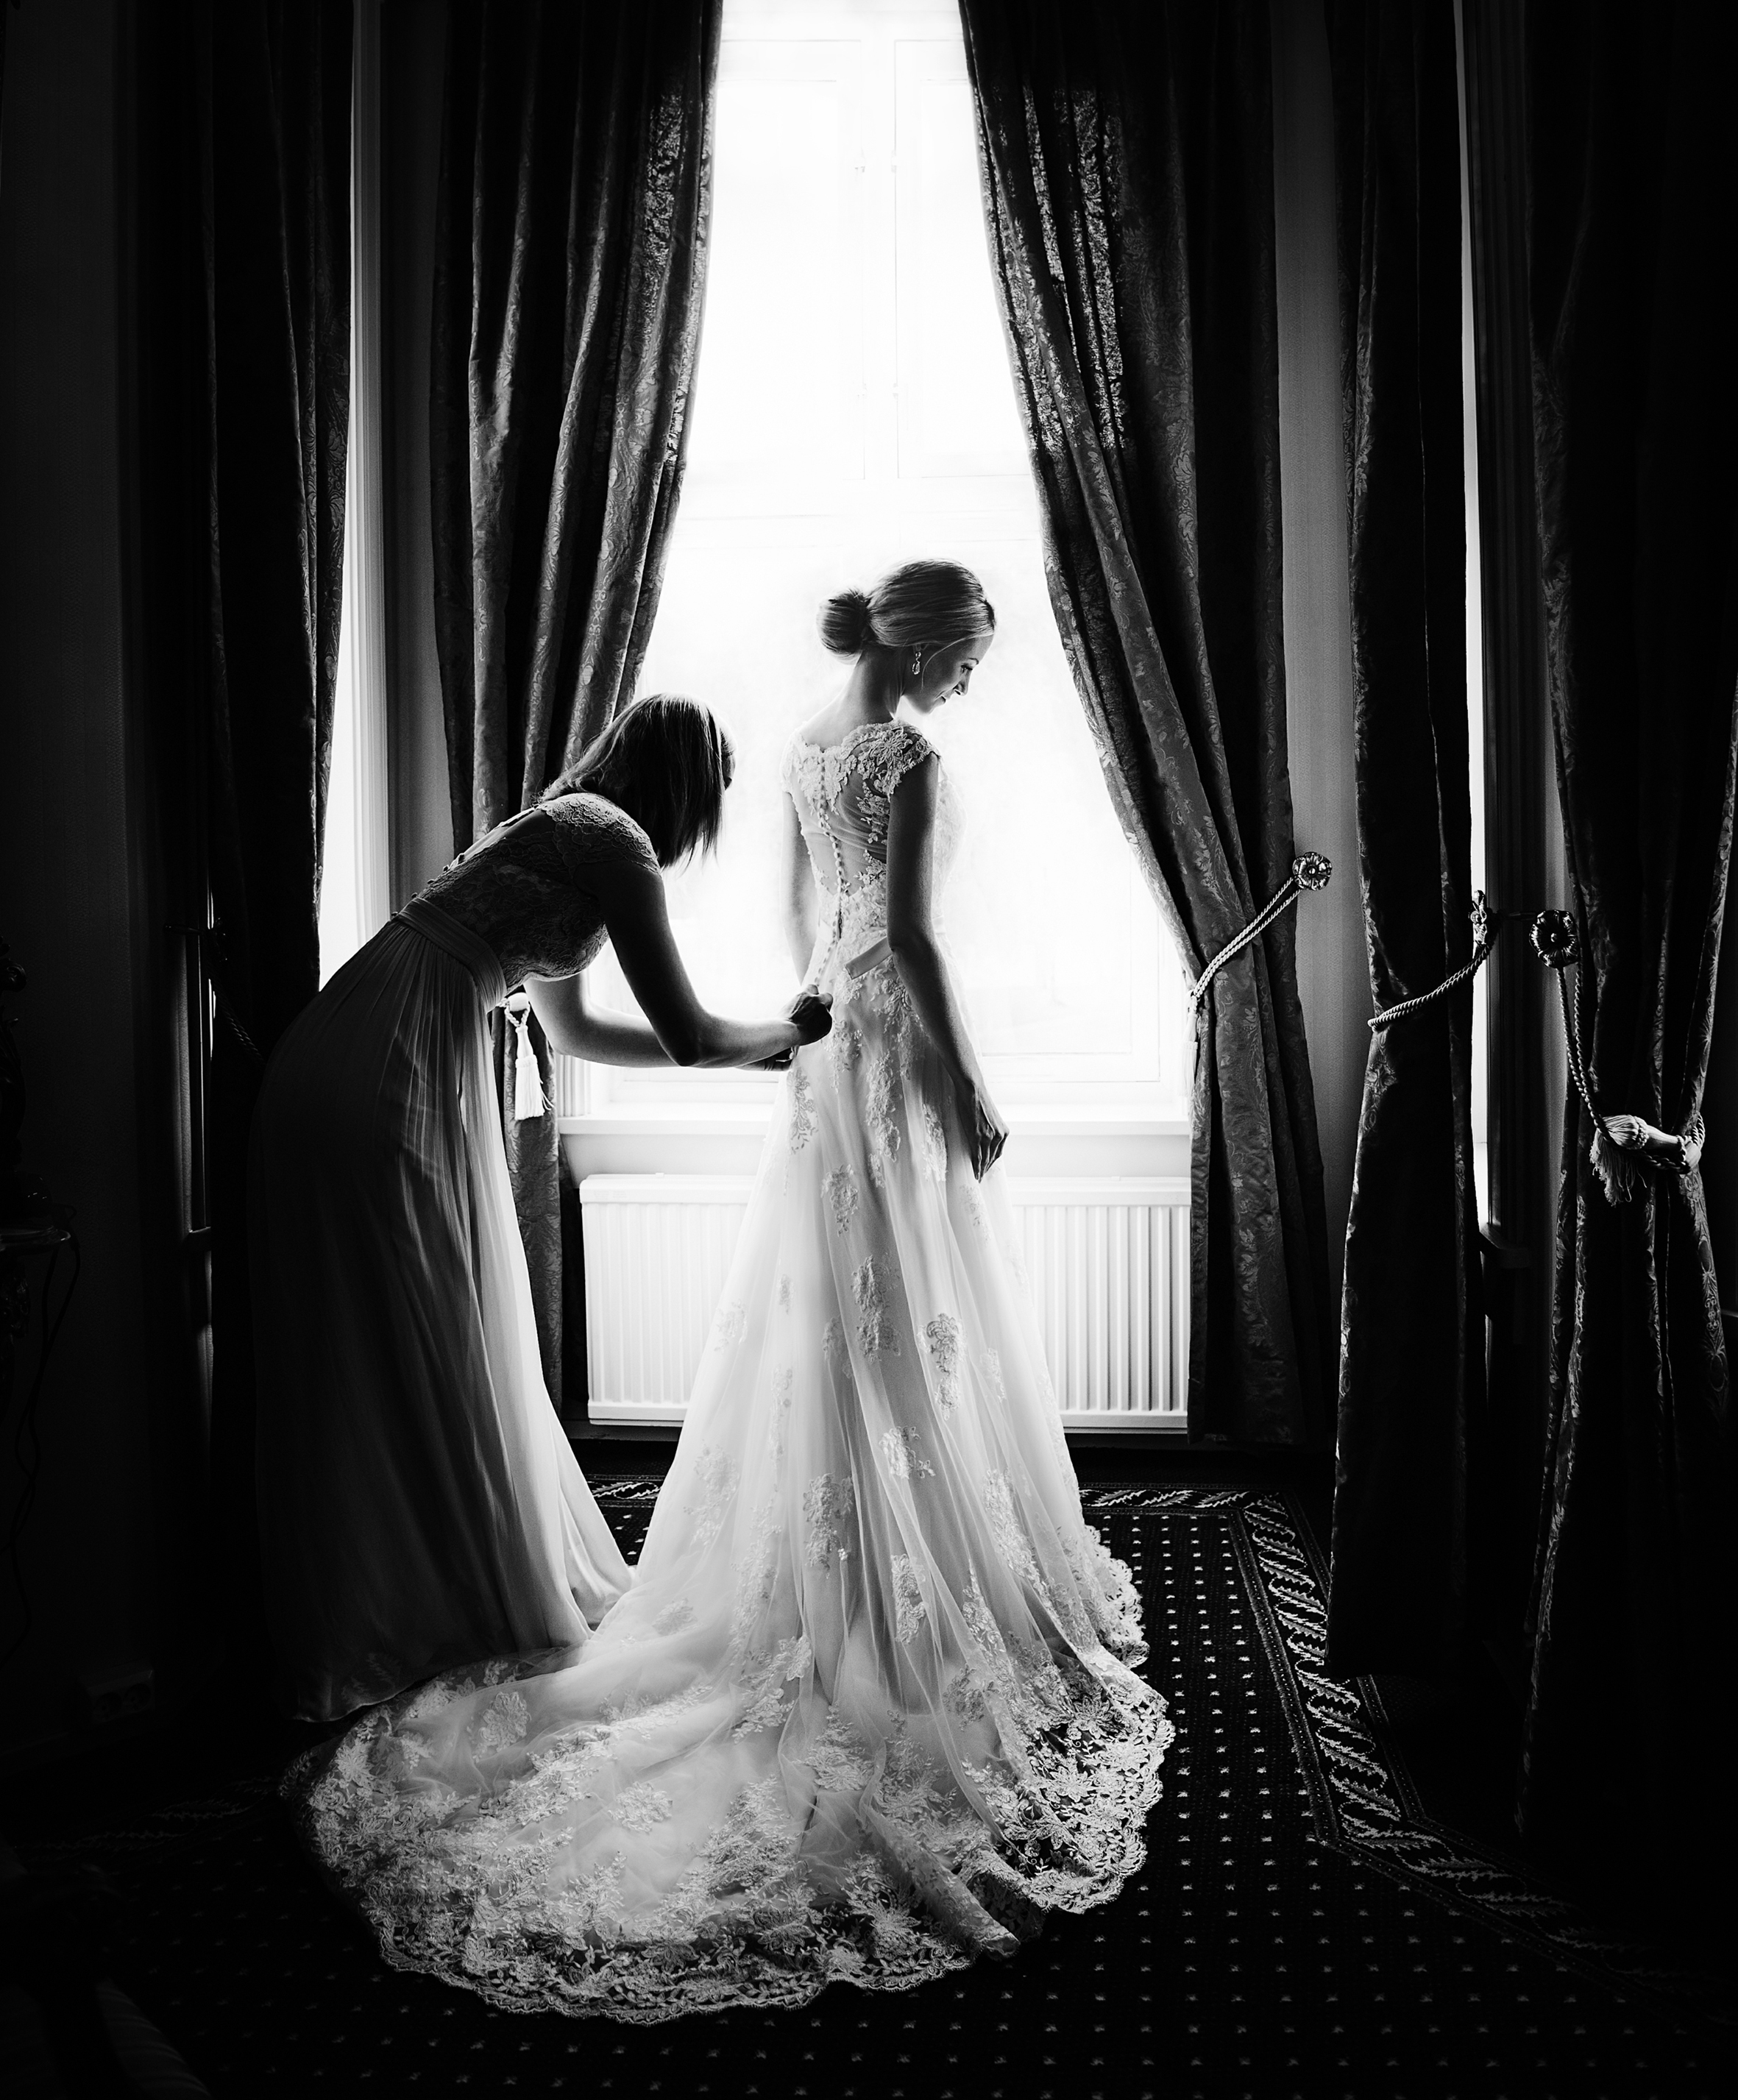 Finishing touches for bride in window light with drapes - photo by Frøydis